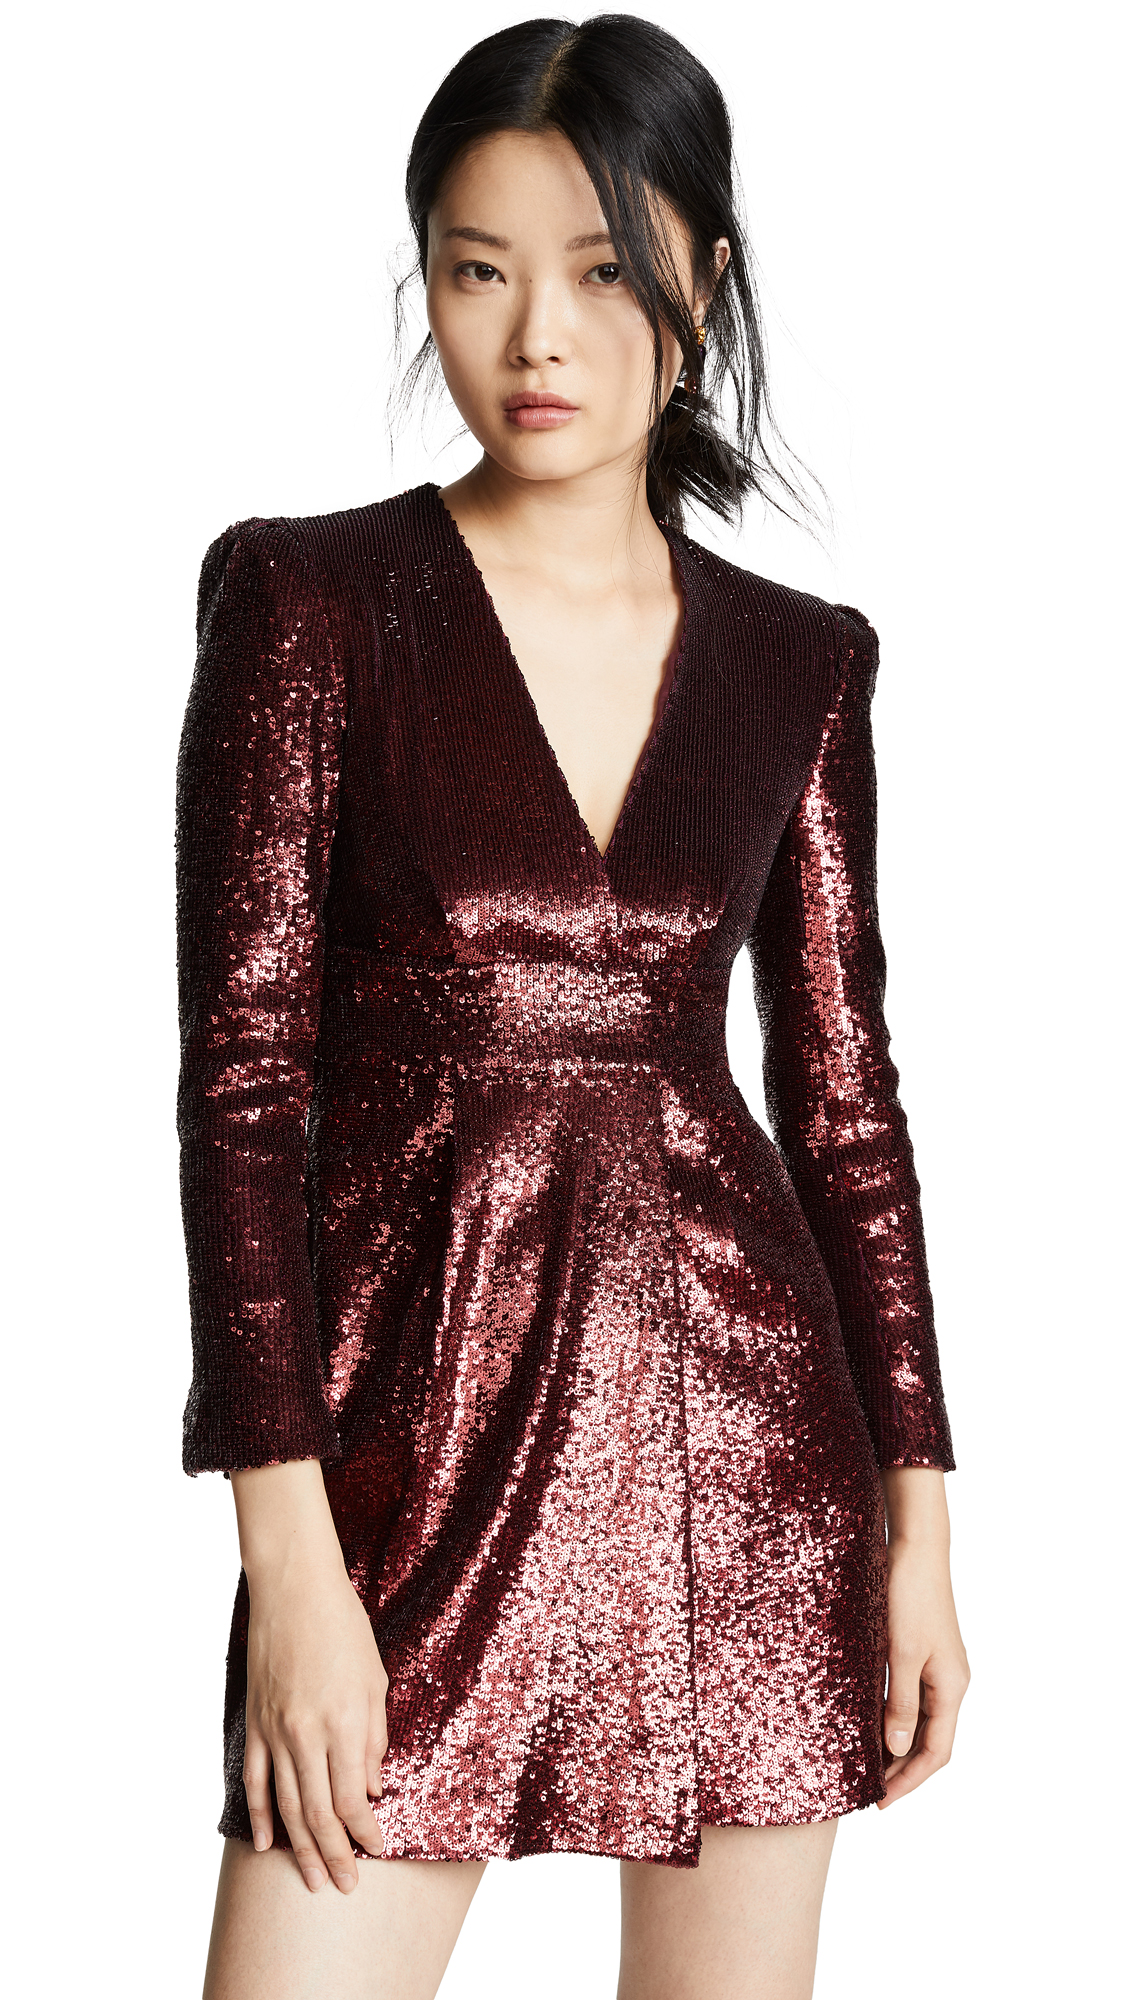 Mara Sequined Fitted Dress - Wine Size 0 in Bordeaux